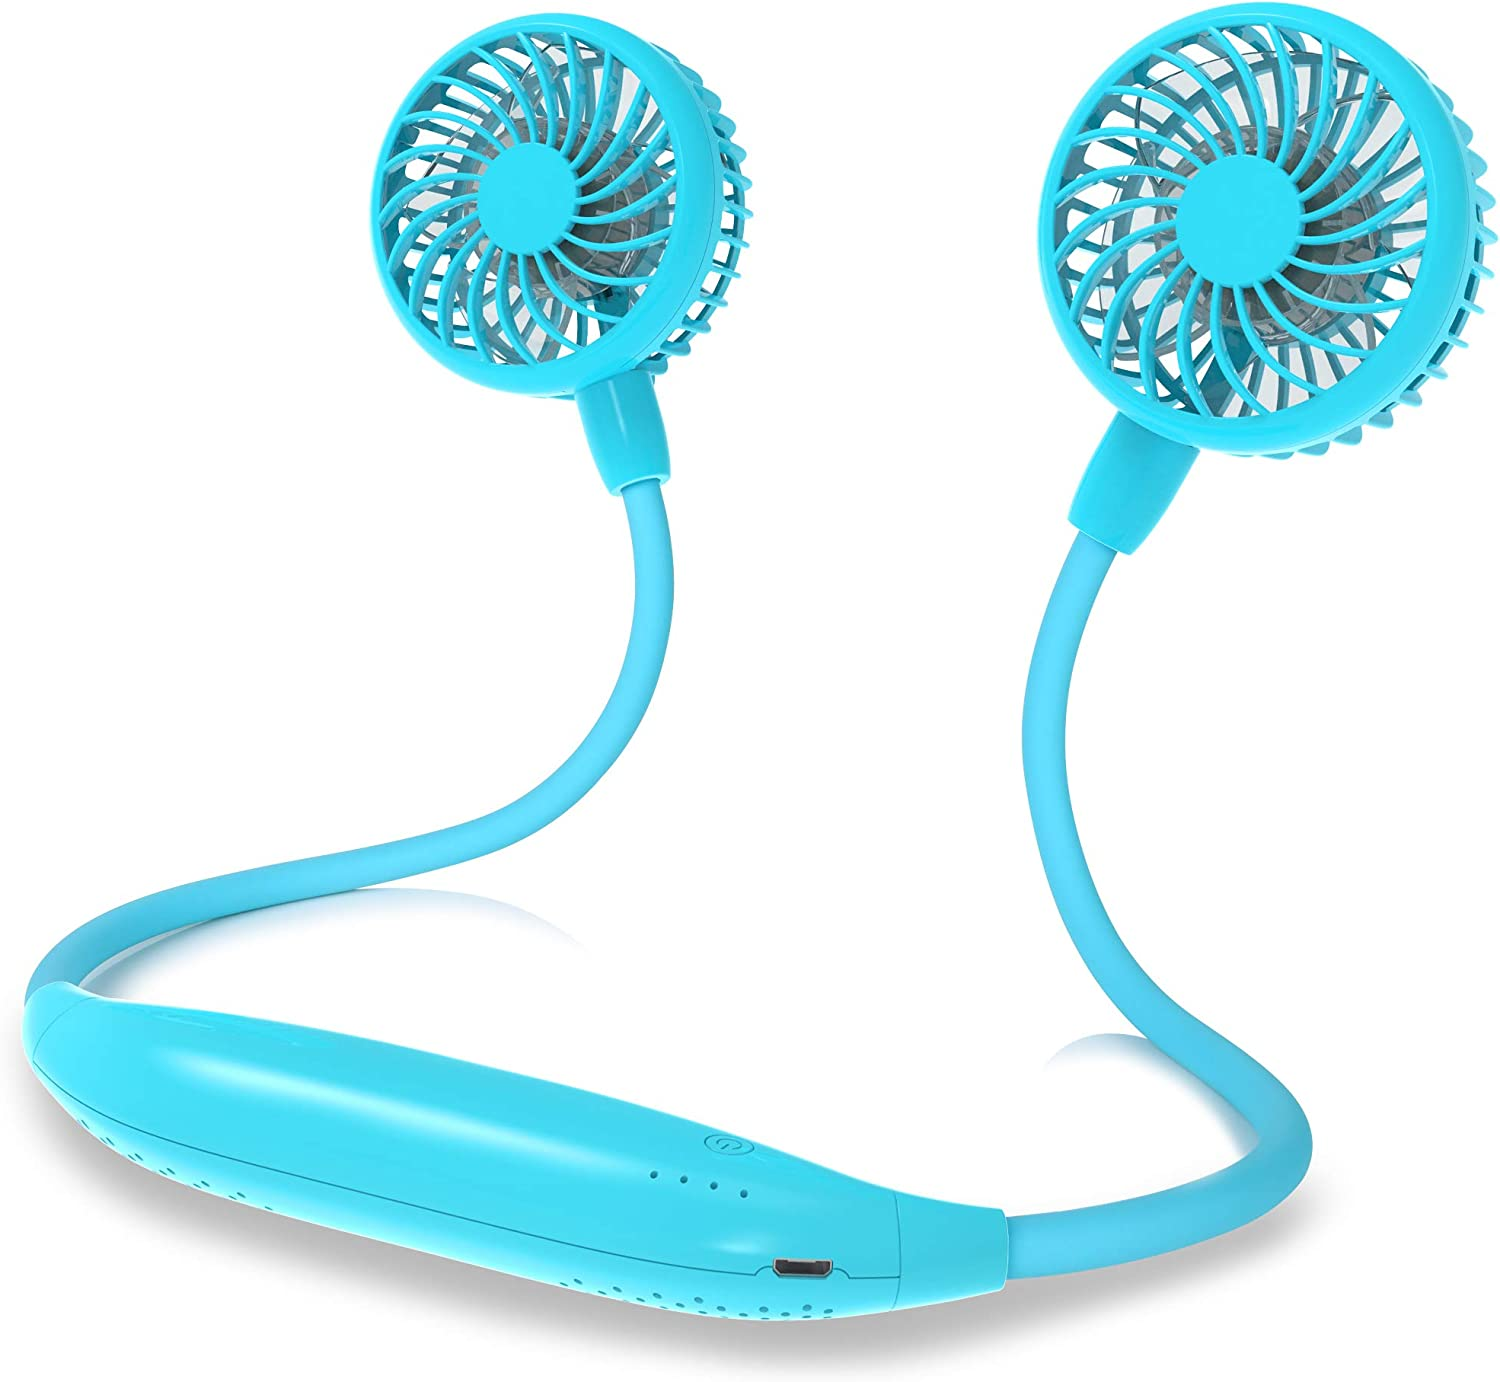 Neck Fan 2600mah Battery Operated Neckband Fan 6-Speed Hand-Free Wearable Personal USB Fan for Hot Flashes Home Office Travel Outdoor Sports (Aqua Blue)